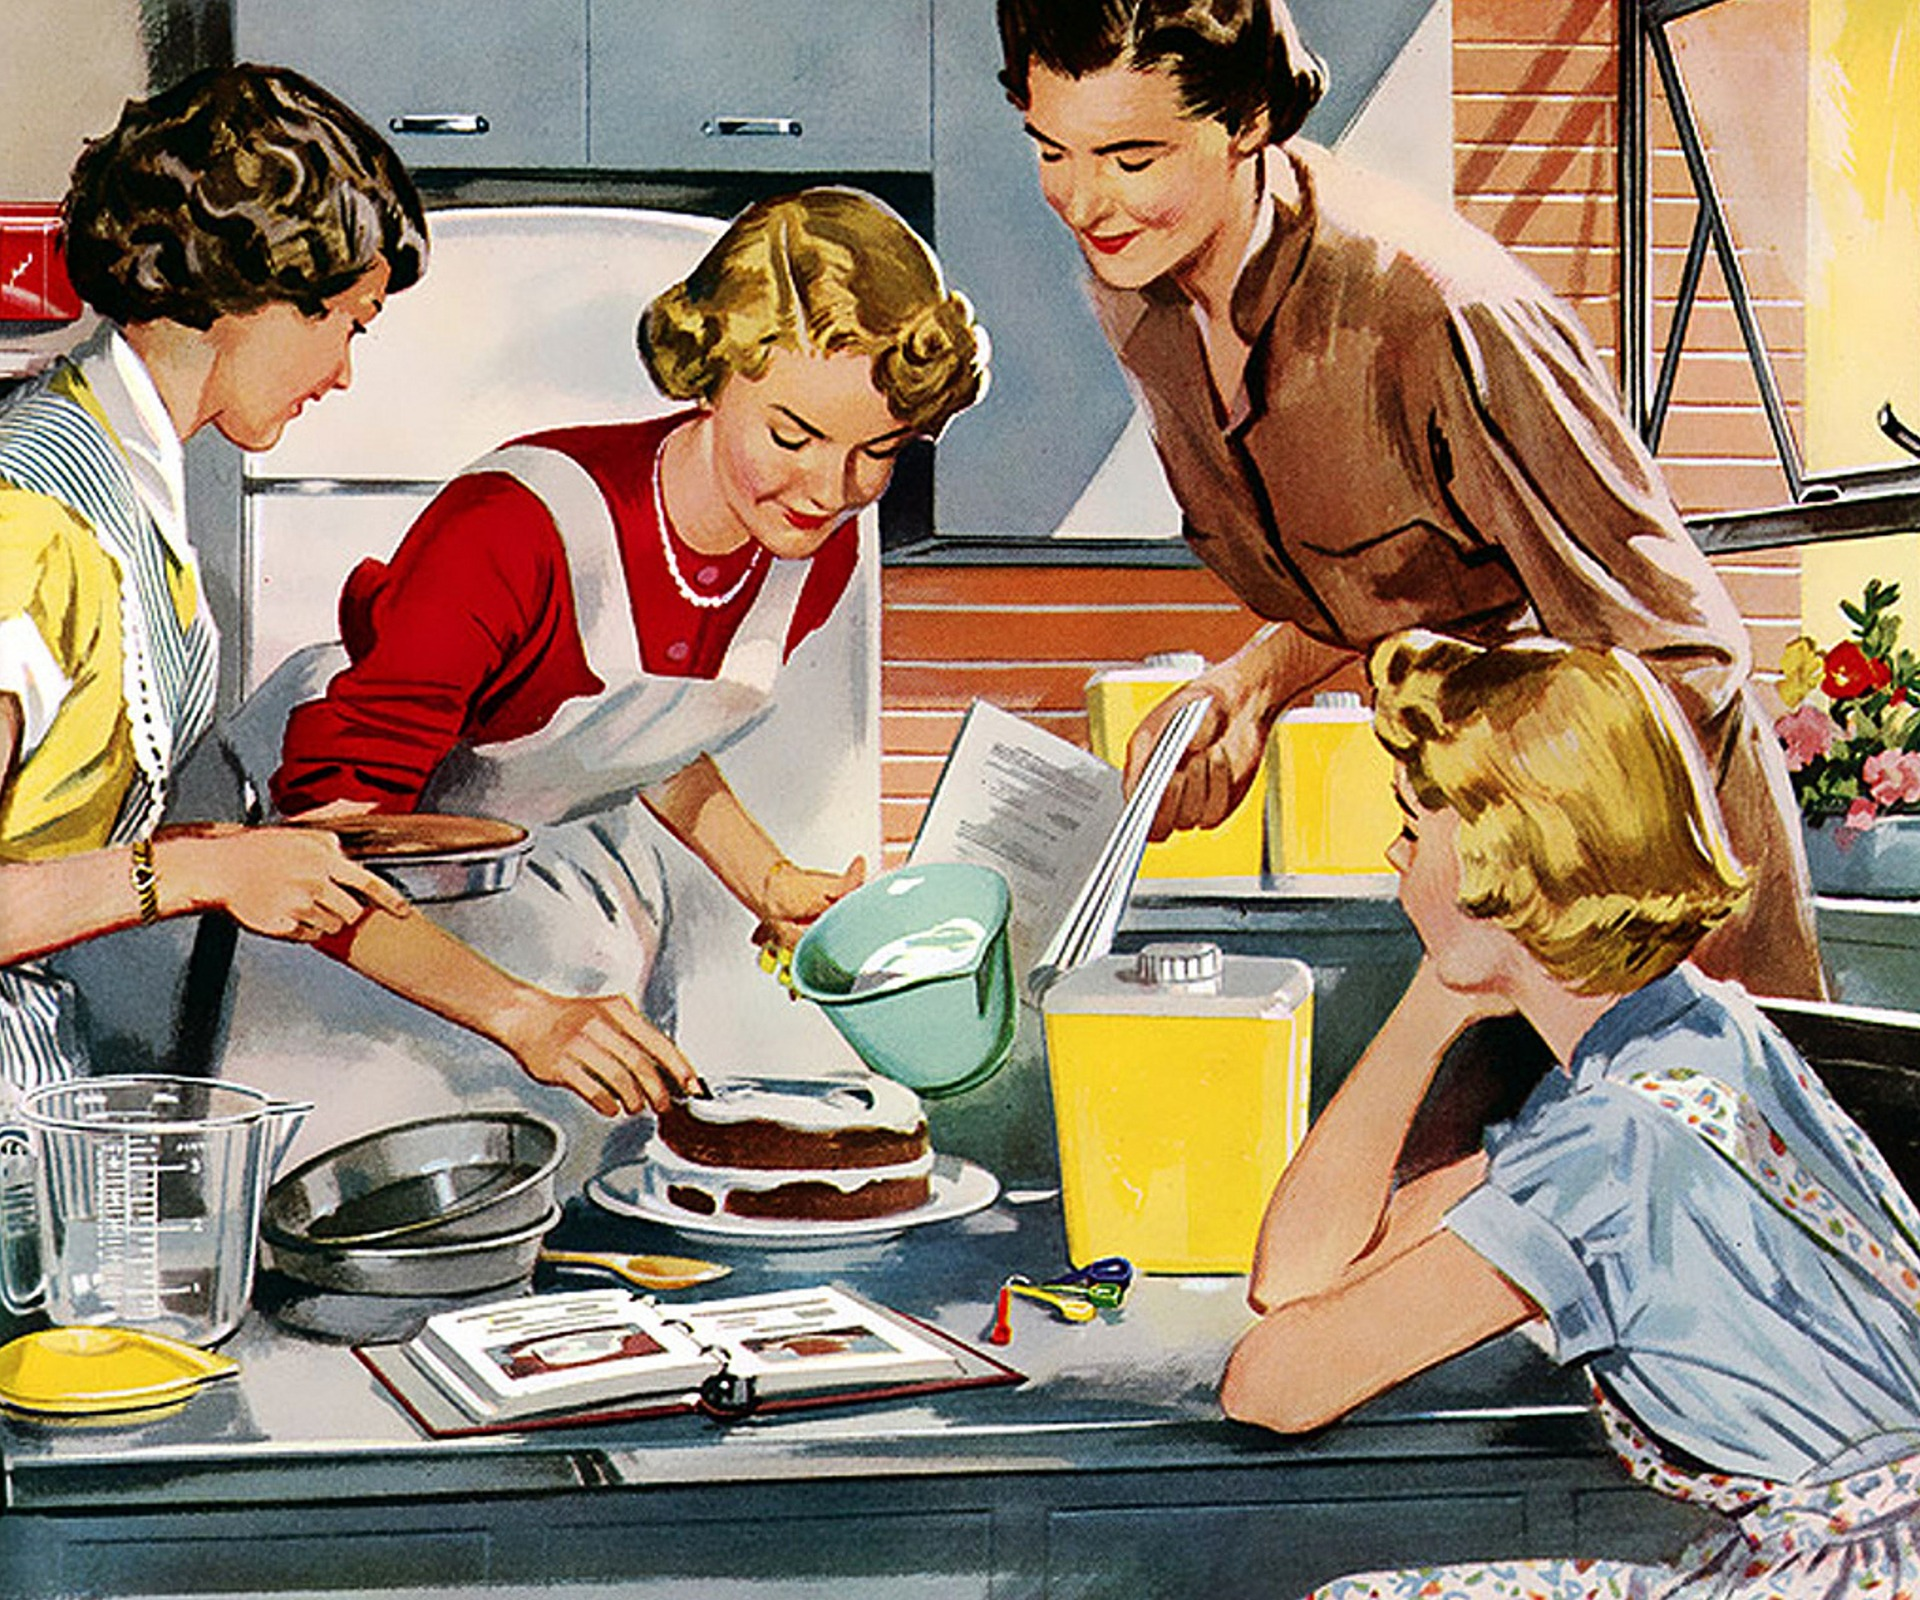 Housekeeping involves cooking and baking